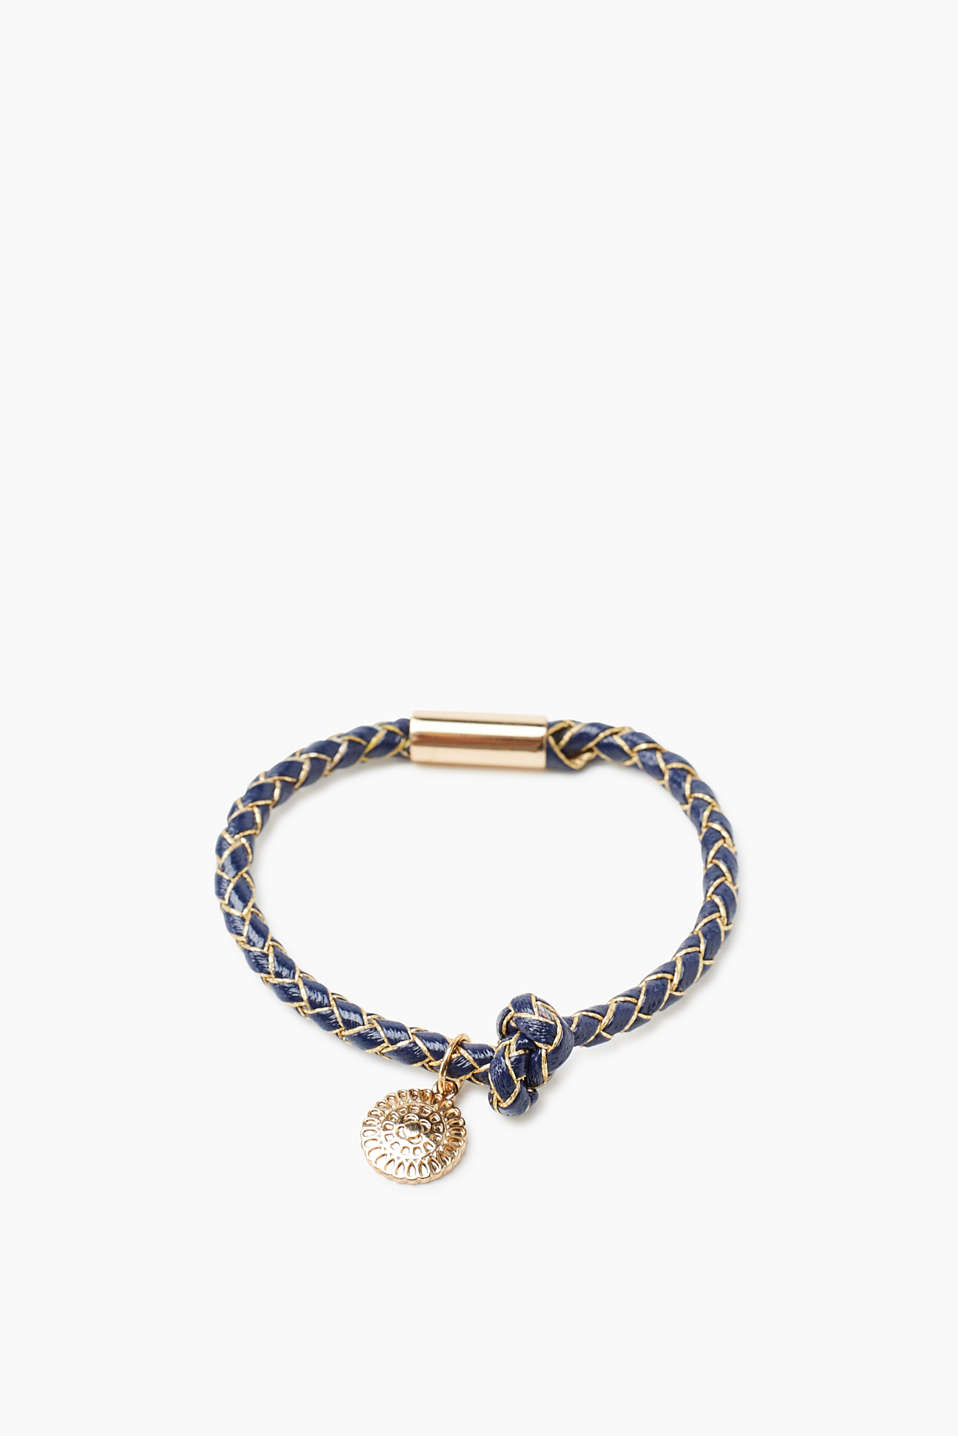 Faux leather bracelet with gold accents and an ornamental charm